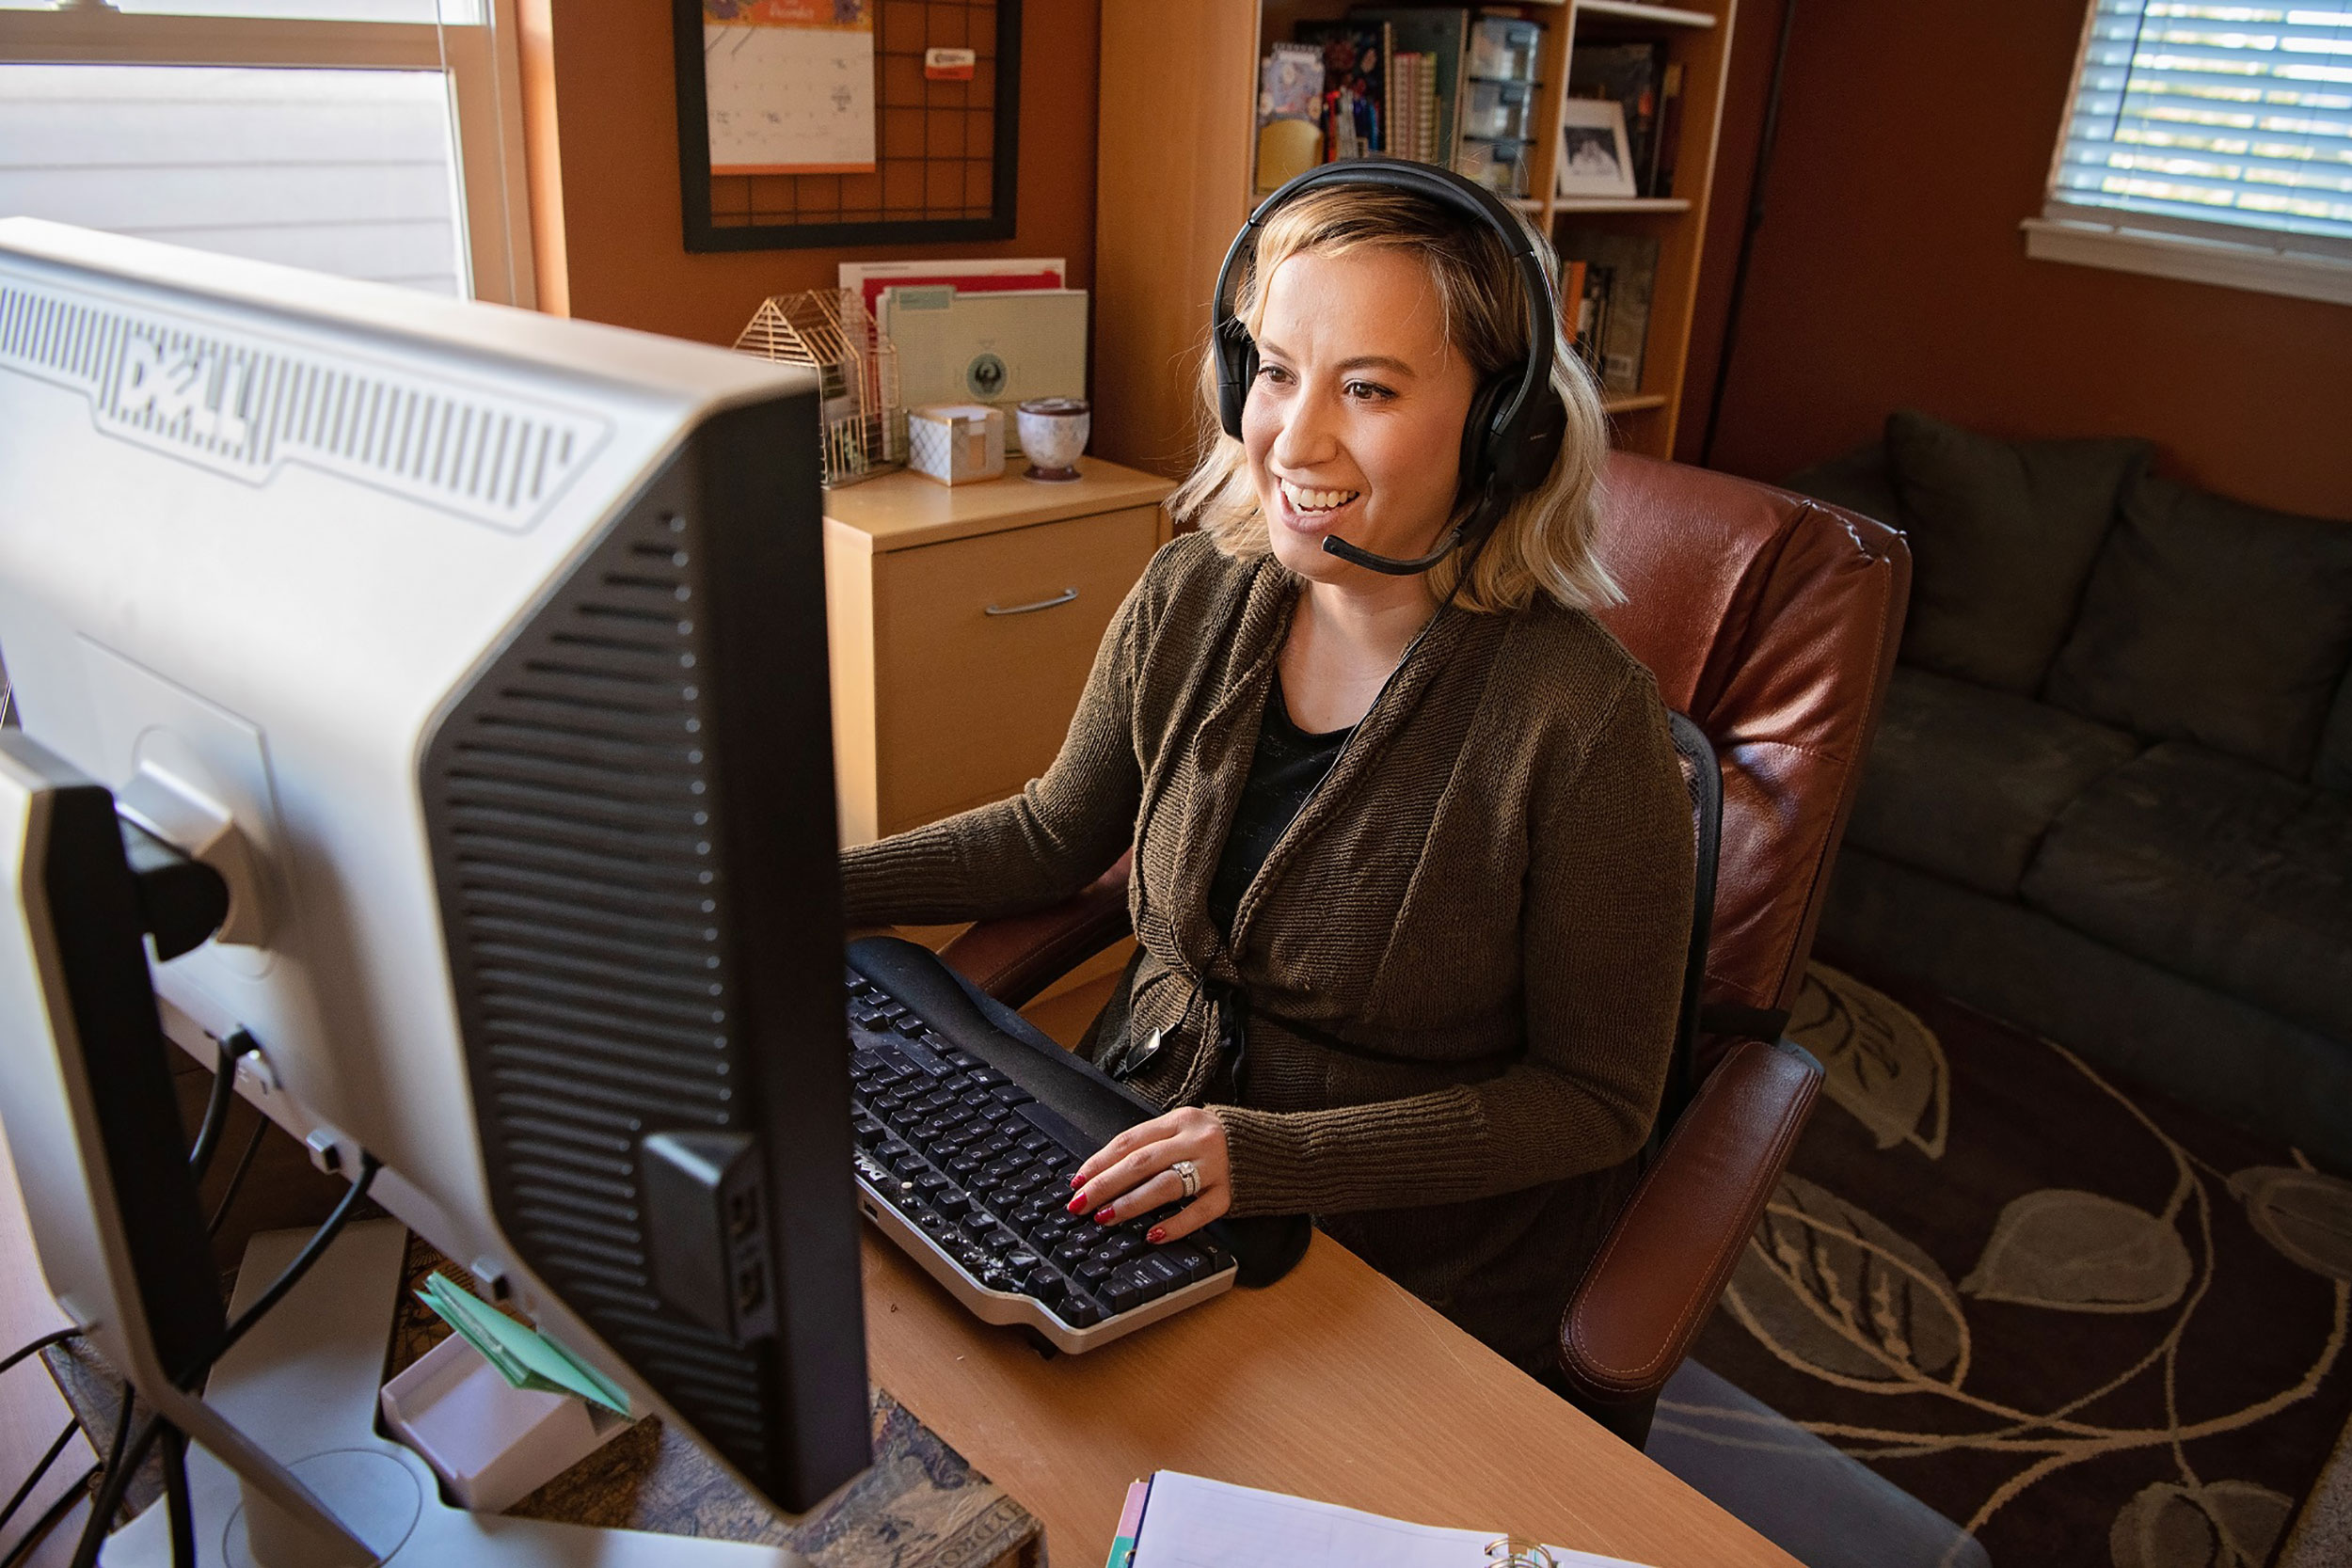 Kim Reeder, a middle school social studies teacher at Colorado Connections Academy, said virtual education enables her to meet the individual needs of each of her students.